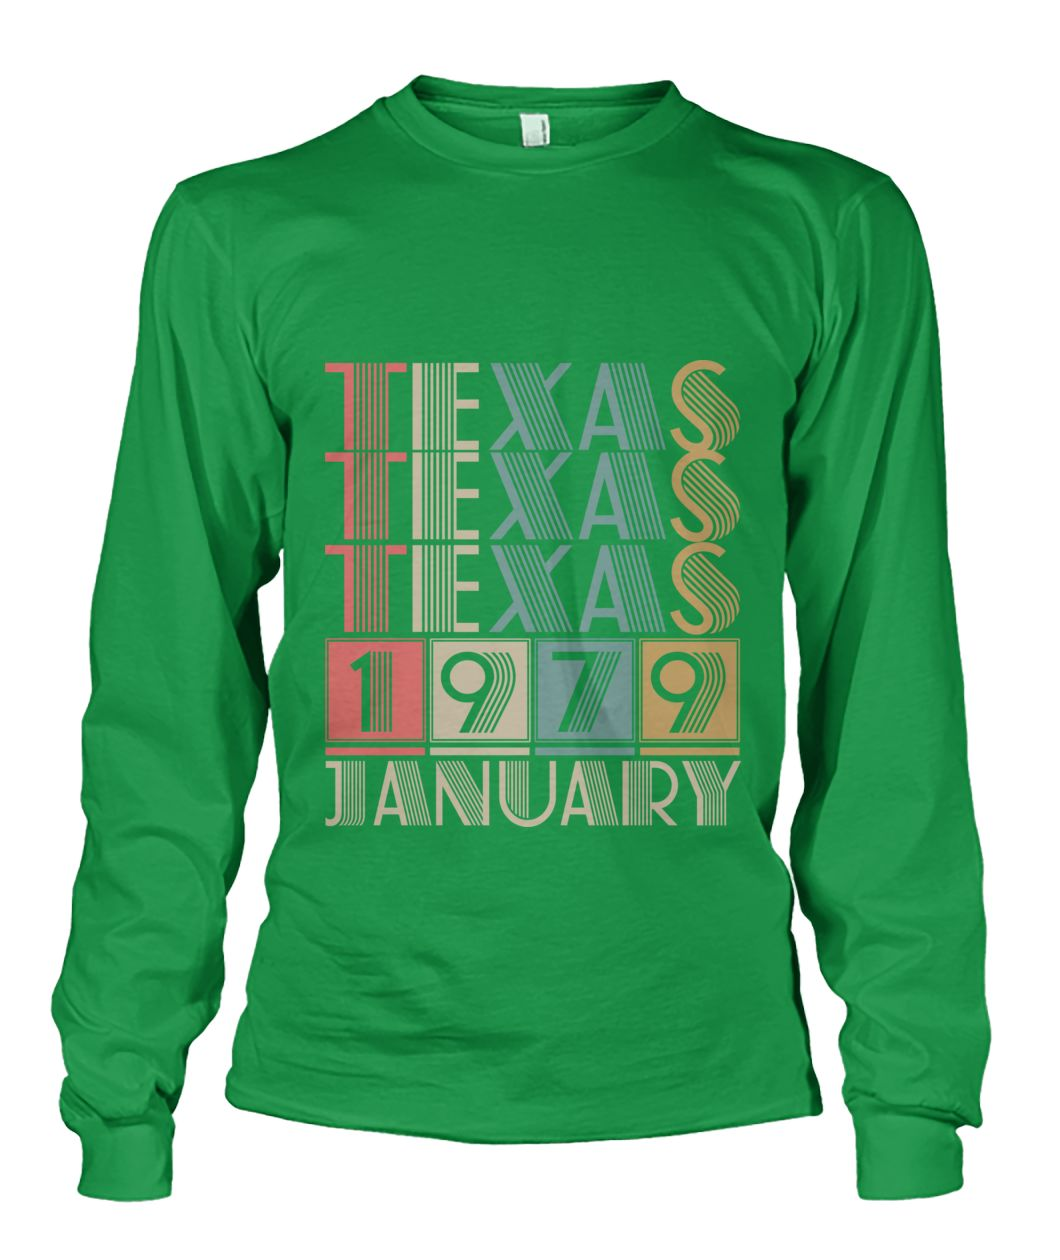 Born in Texas in January 1979 t shirt-Short Sleeves - TEEHOT.COM